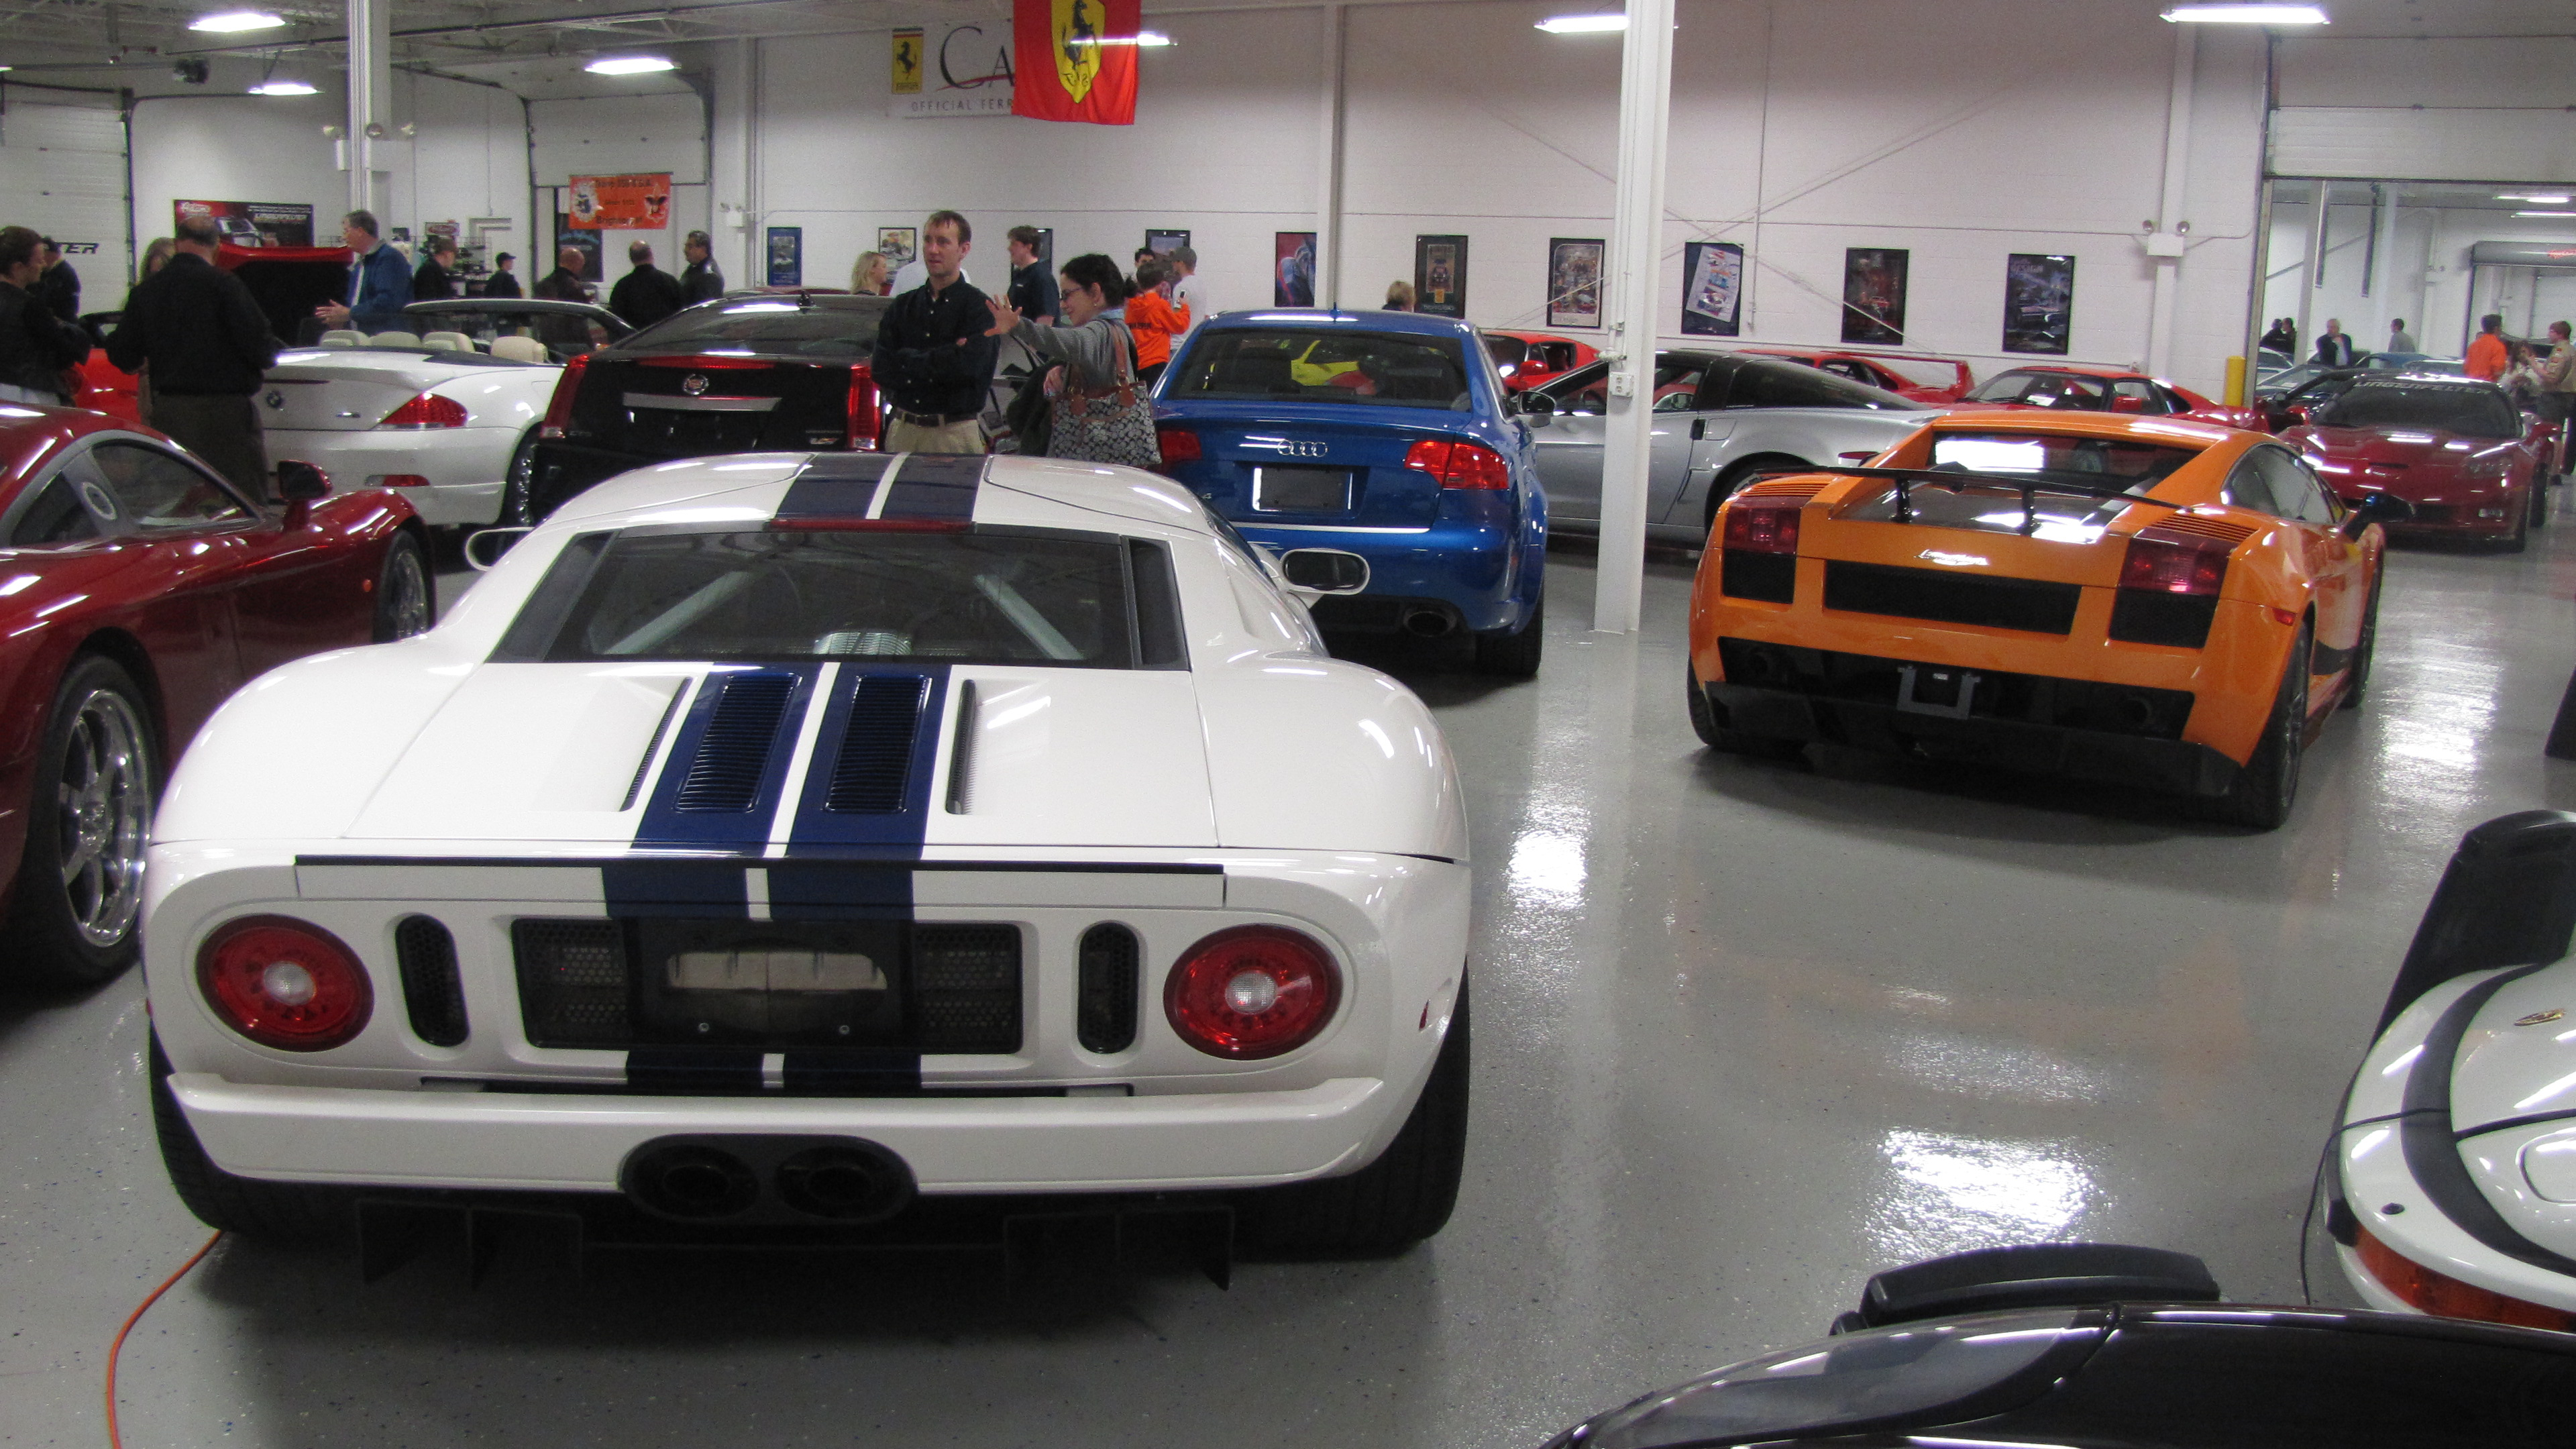 Over 150 Rare Muscle Cars, Classics and Exotic Cars.